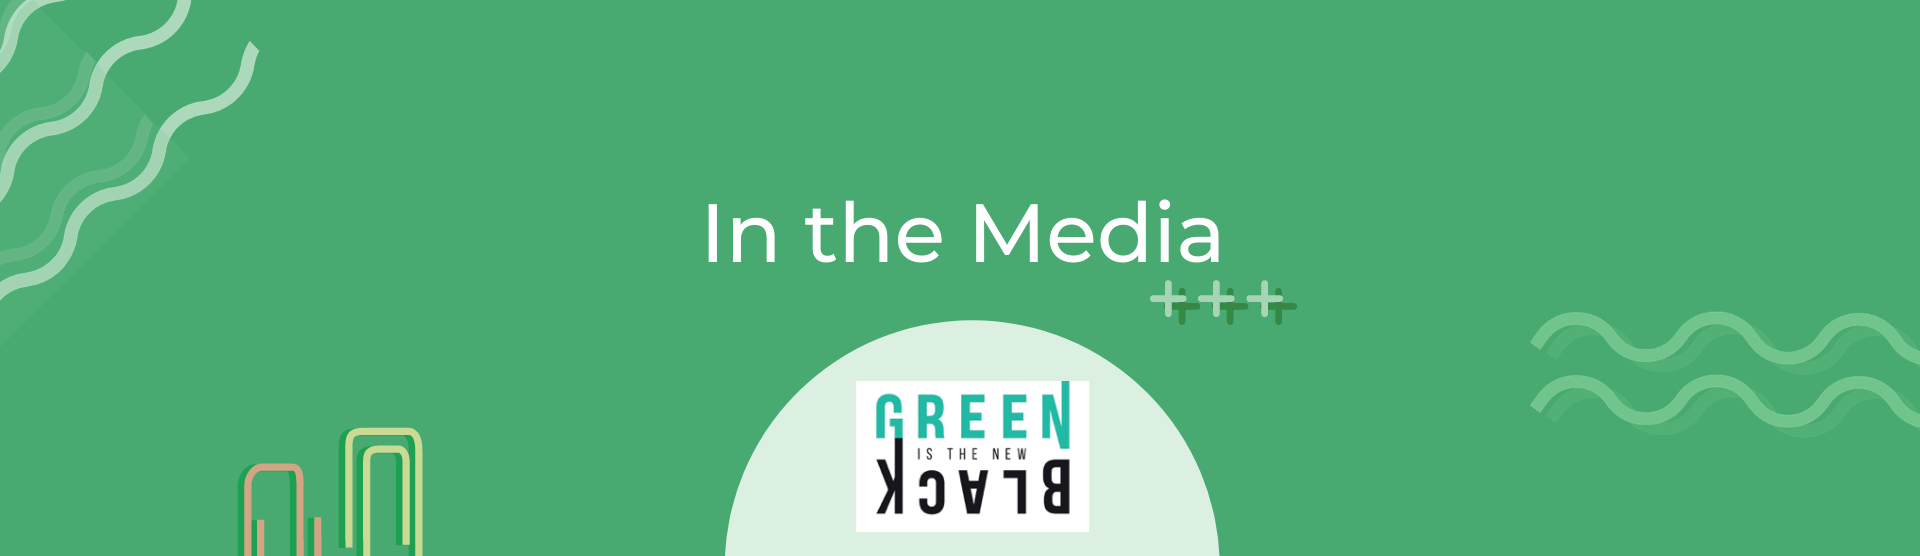 Green is the new black Interview